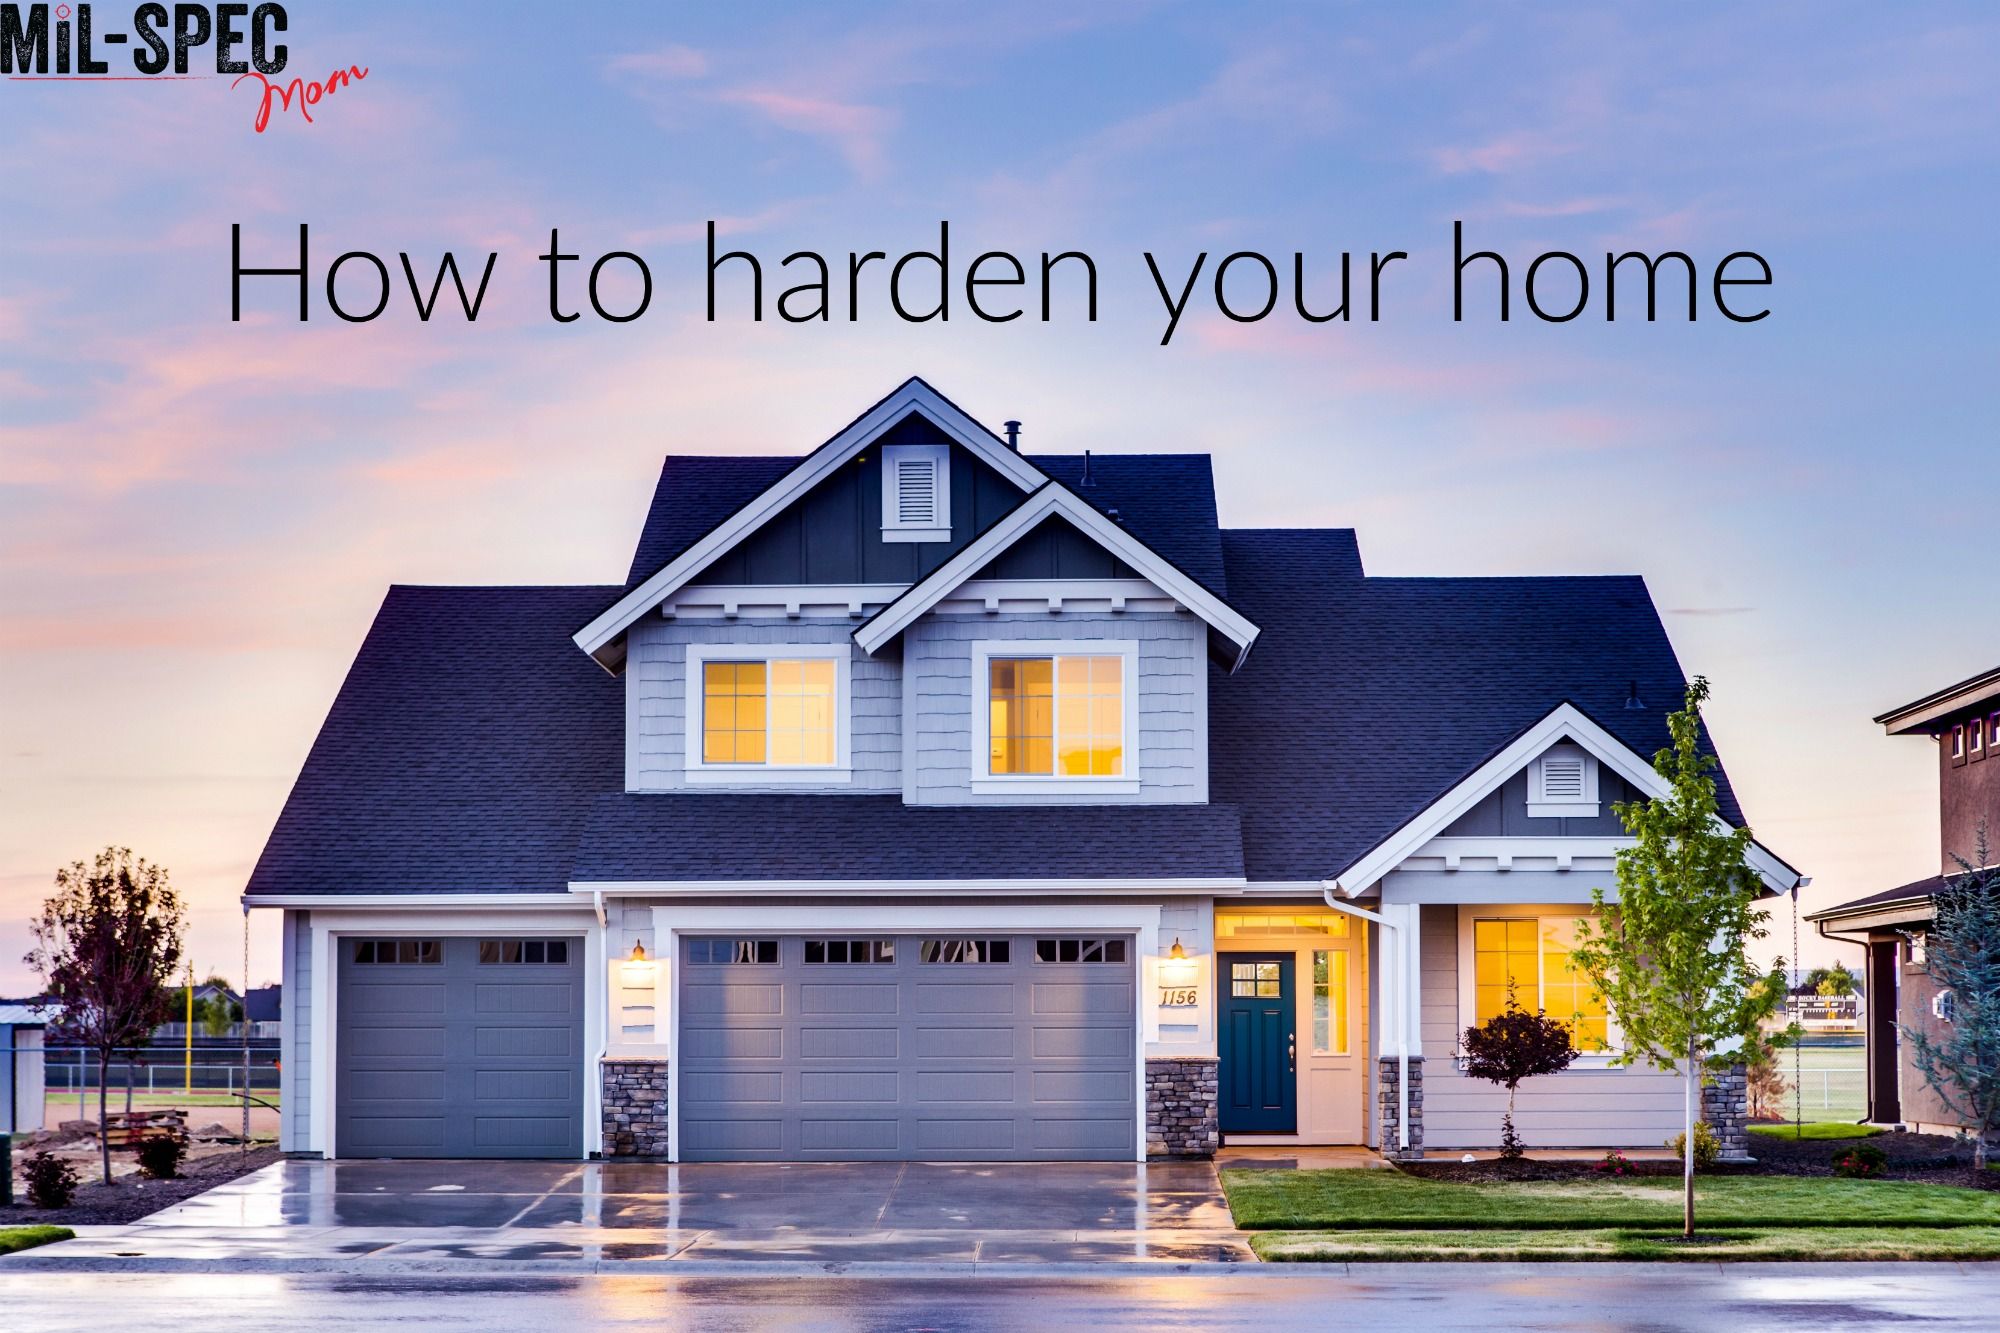 How to harden your home